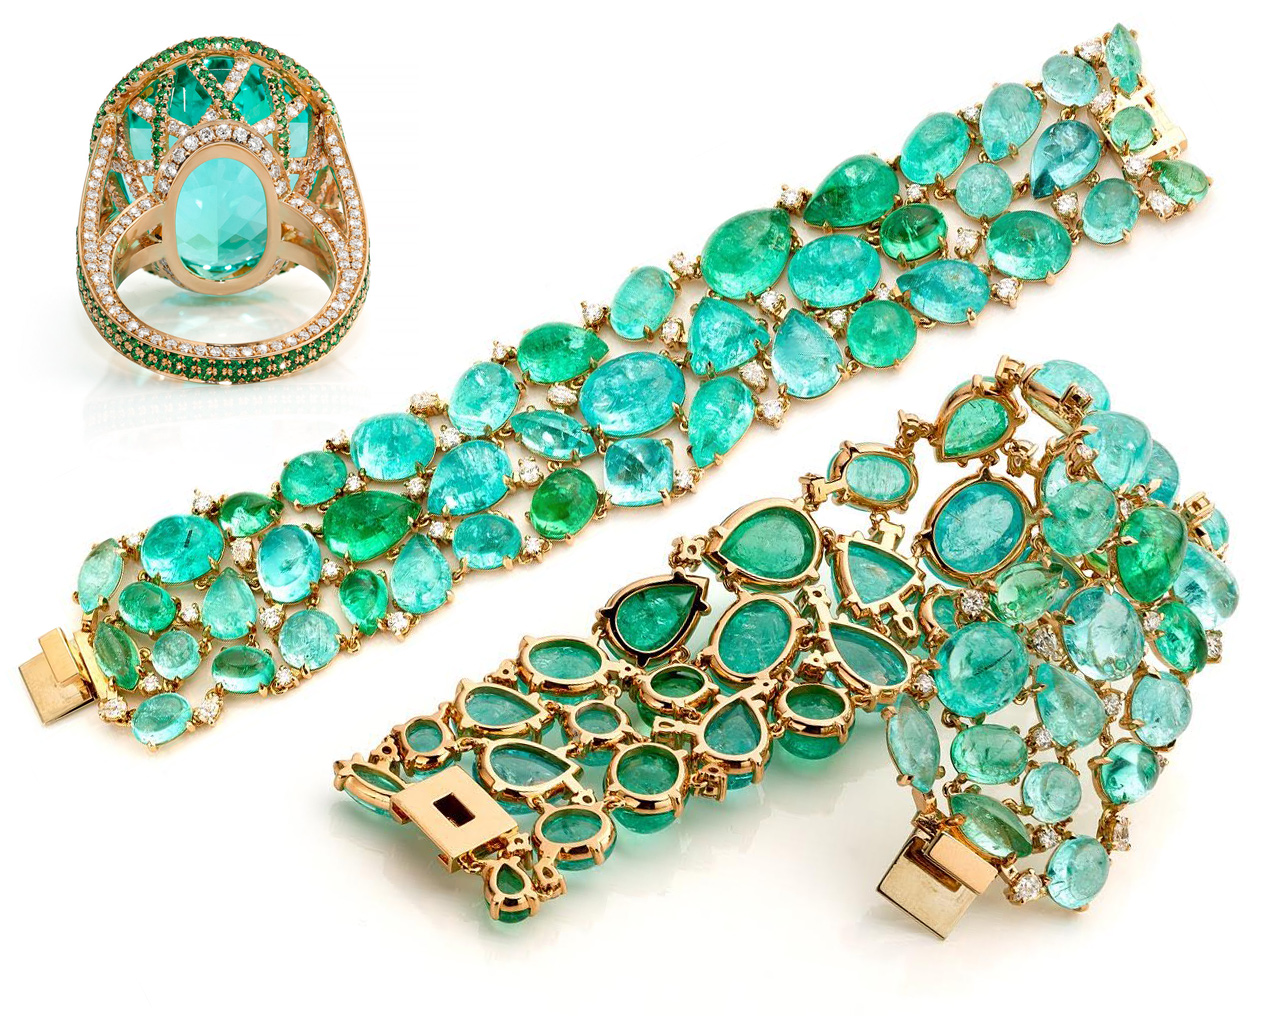 Jochen Leen bracelet with 200 cts of Paraiba tourmalines and diamonds